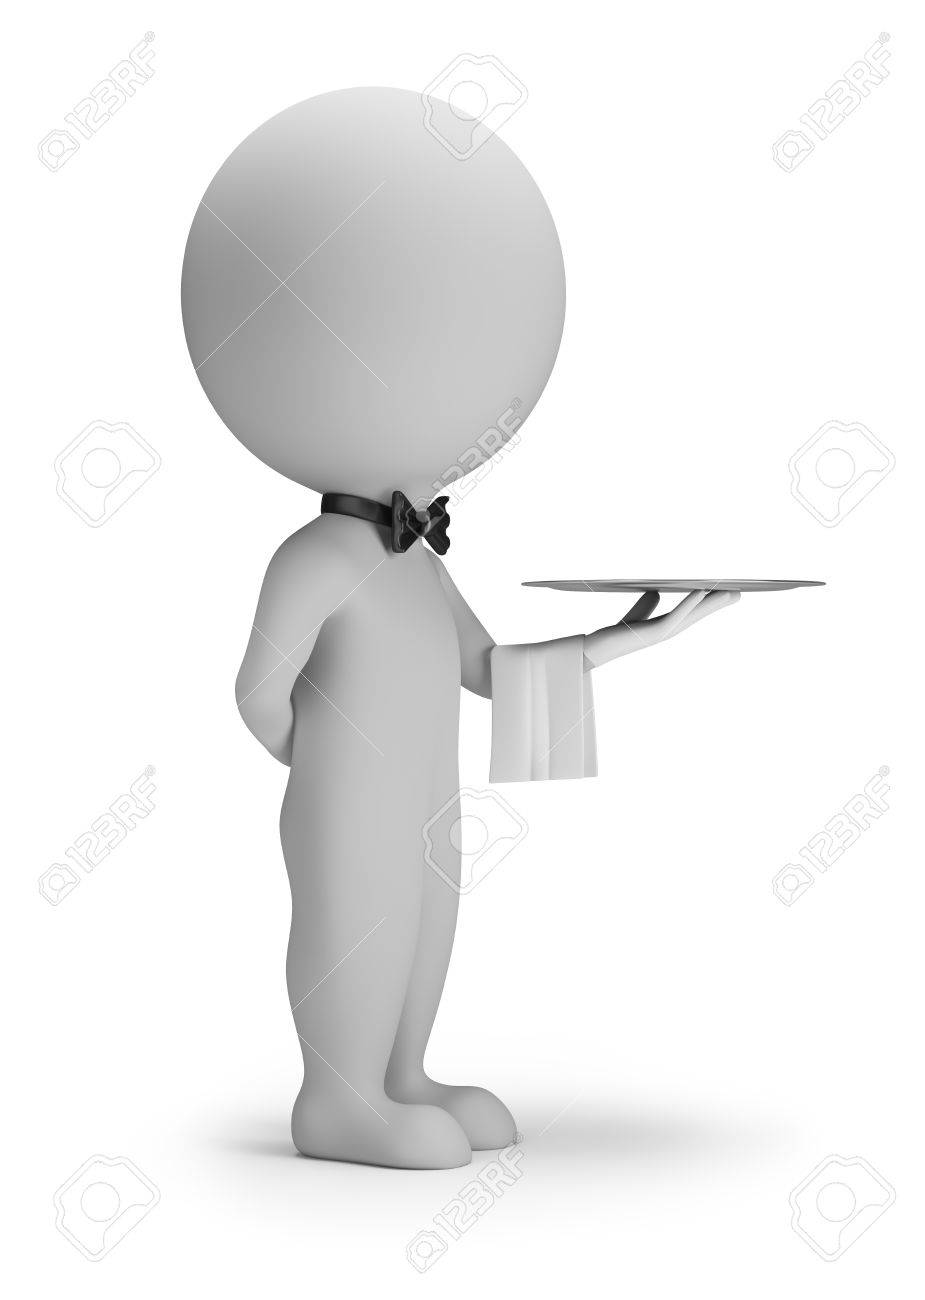 3d small people - waiter with tray  3d image  White background Stock Photo - 28511709